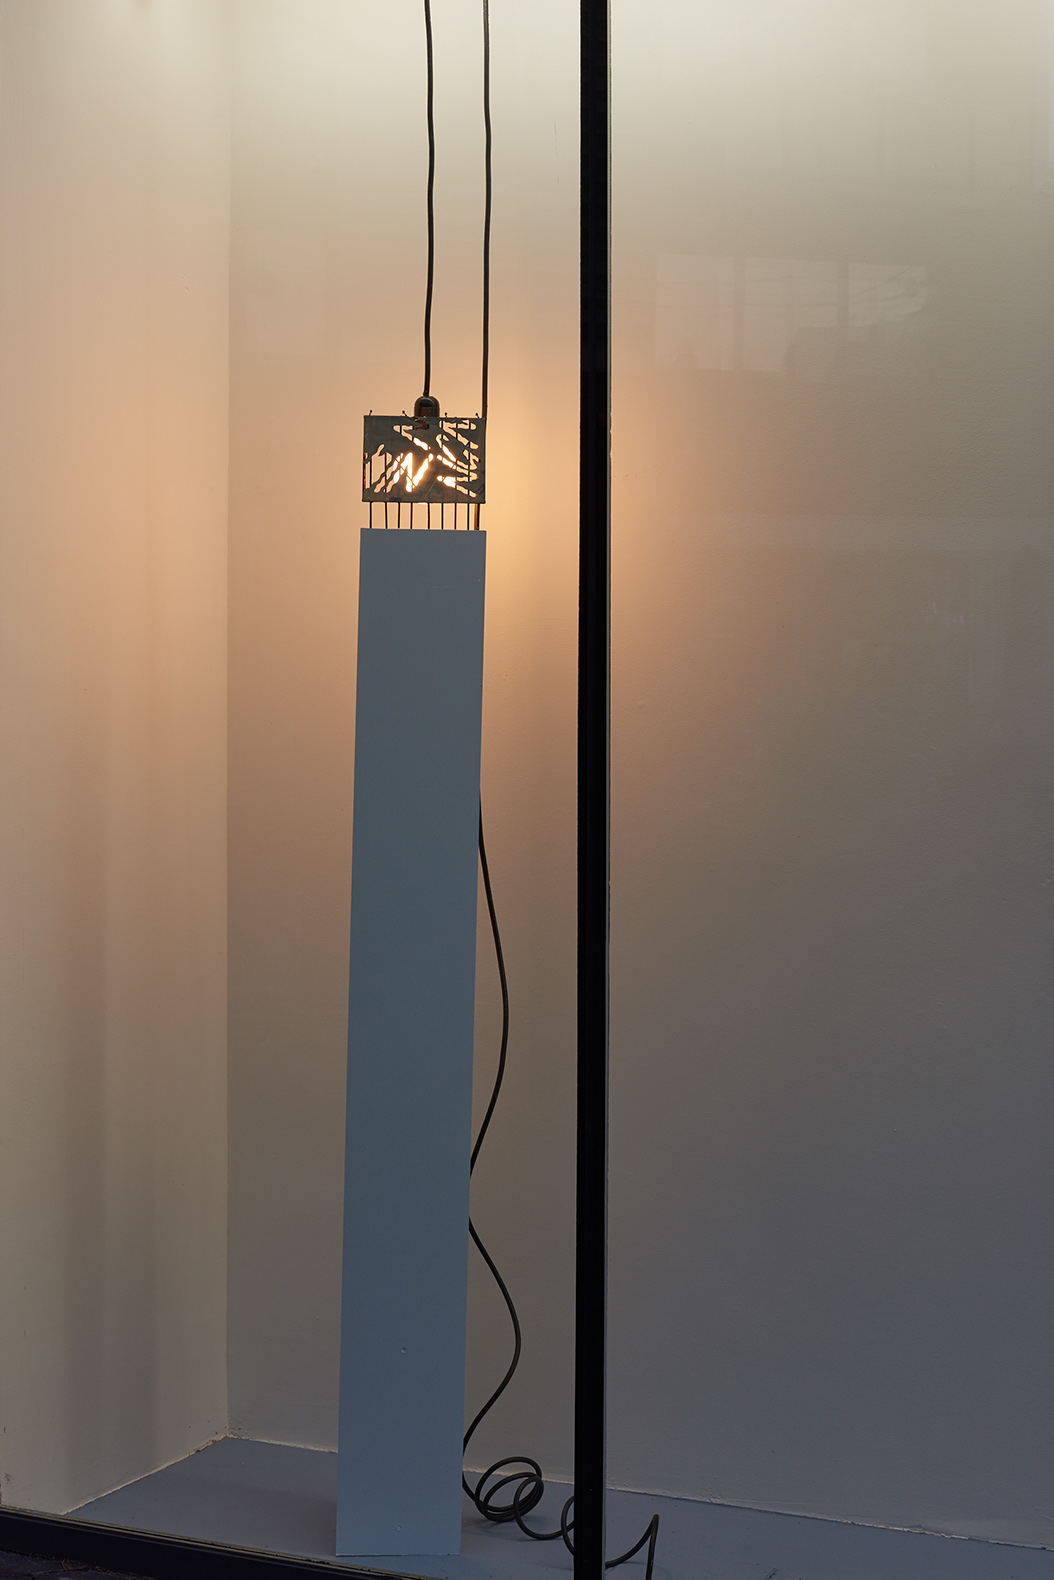 Charlie Godet Thomas, Night Song, Morning Song, 2019. Acrylic and pencil on paper, cut painted paper fragment, wood, plastic, light fitting. 164 x 20 x 18 cm. Photographer Jonathon Bassett.